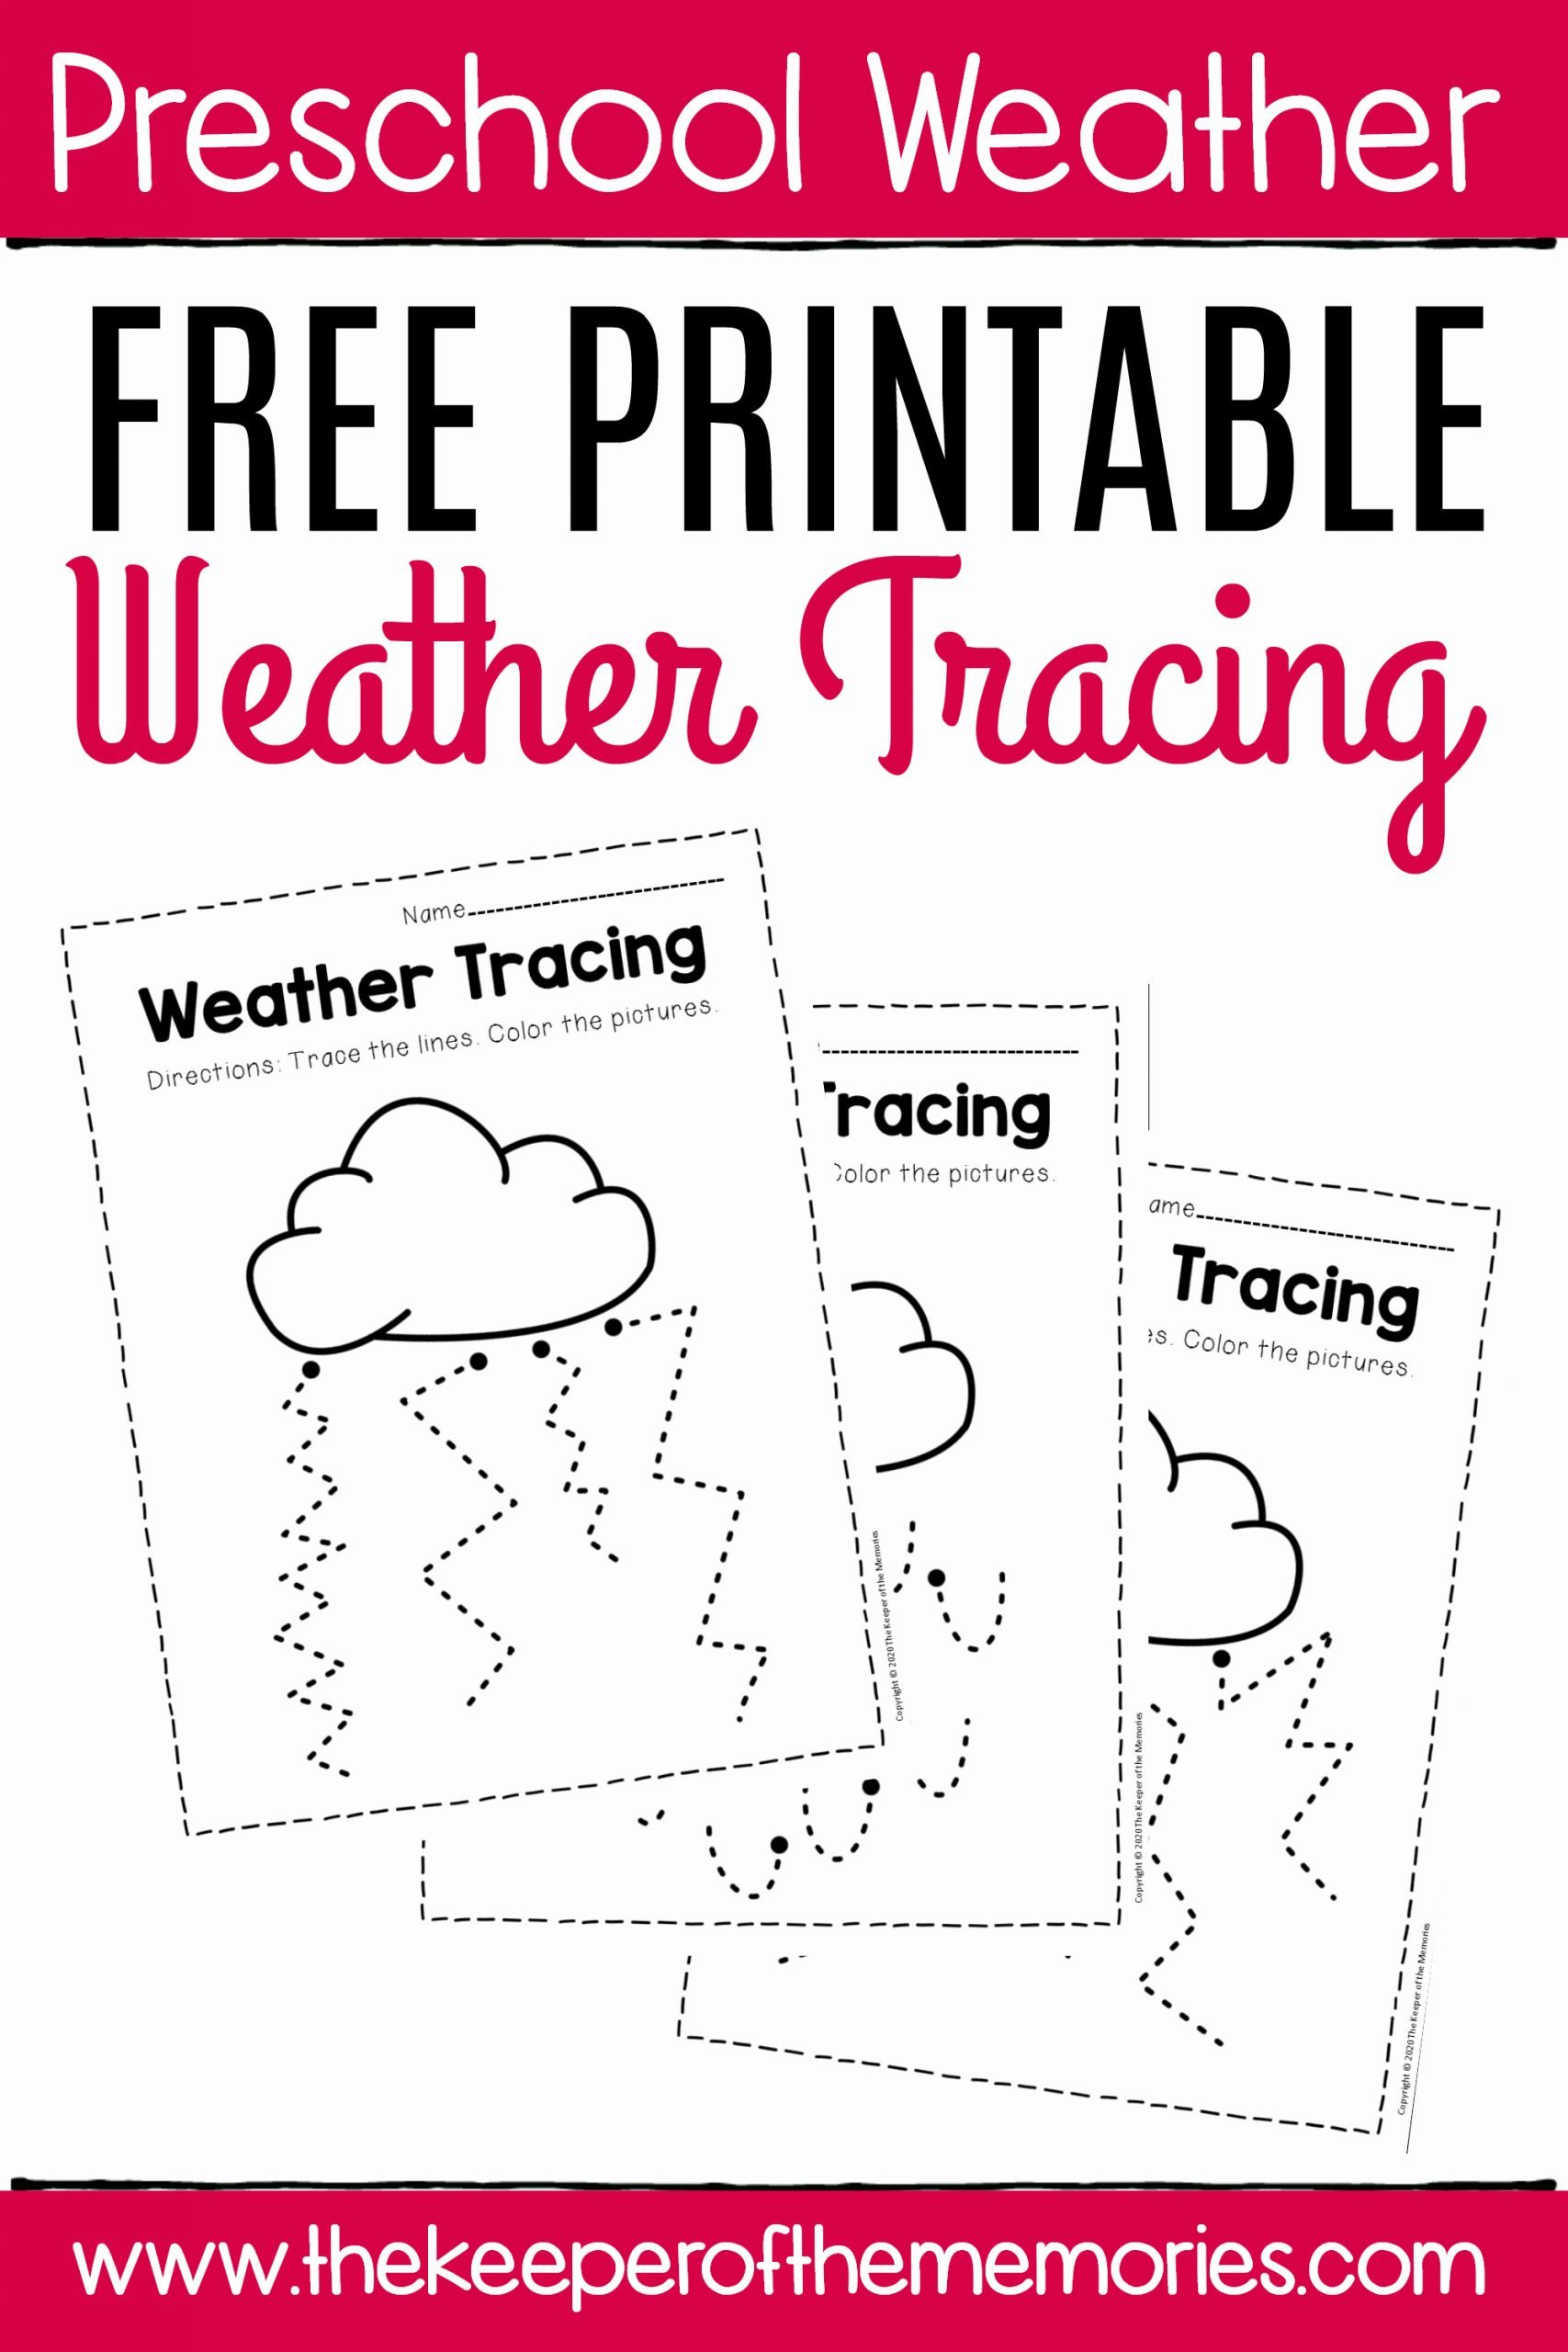 Weather Worksheets for Preschoolers Lovely Free Printable Storm Clouds Tracing Weather Preschool